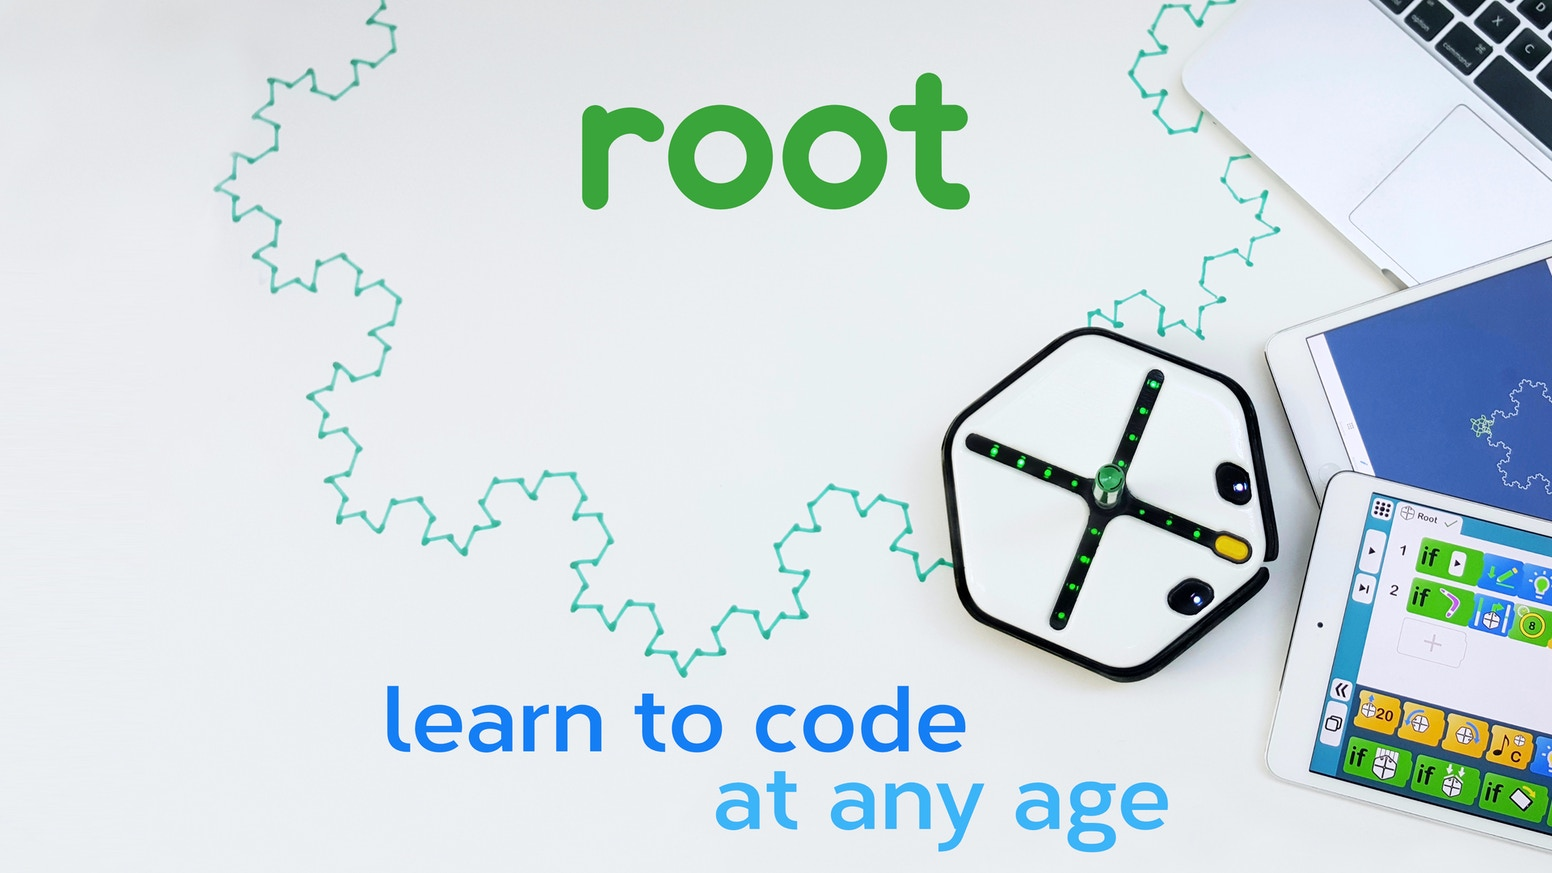 Root A Robot To Teach Coding By Robotics Kickstarter Line Follower Scanner Schematic Let Your Kids Fall In Love With The That Turns Any